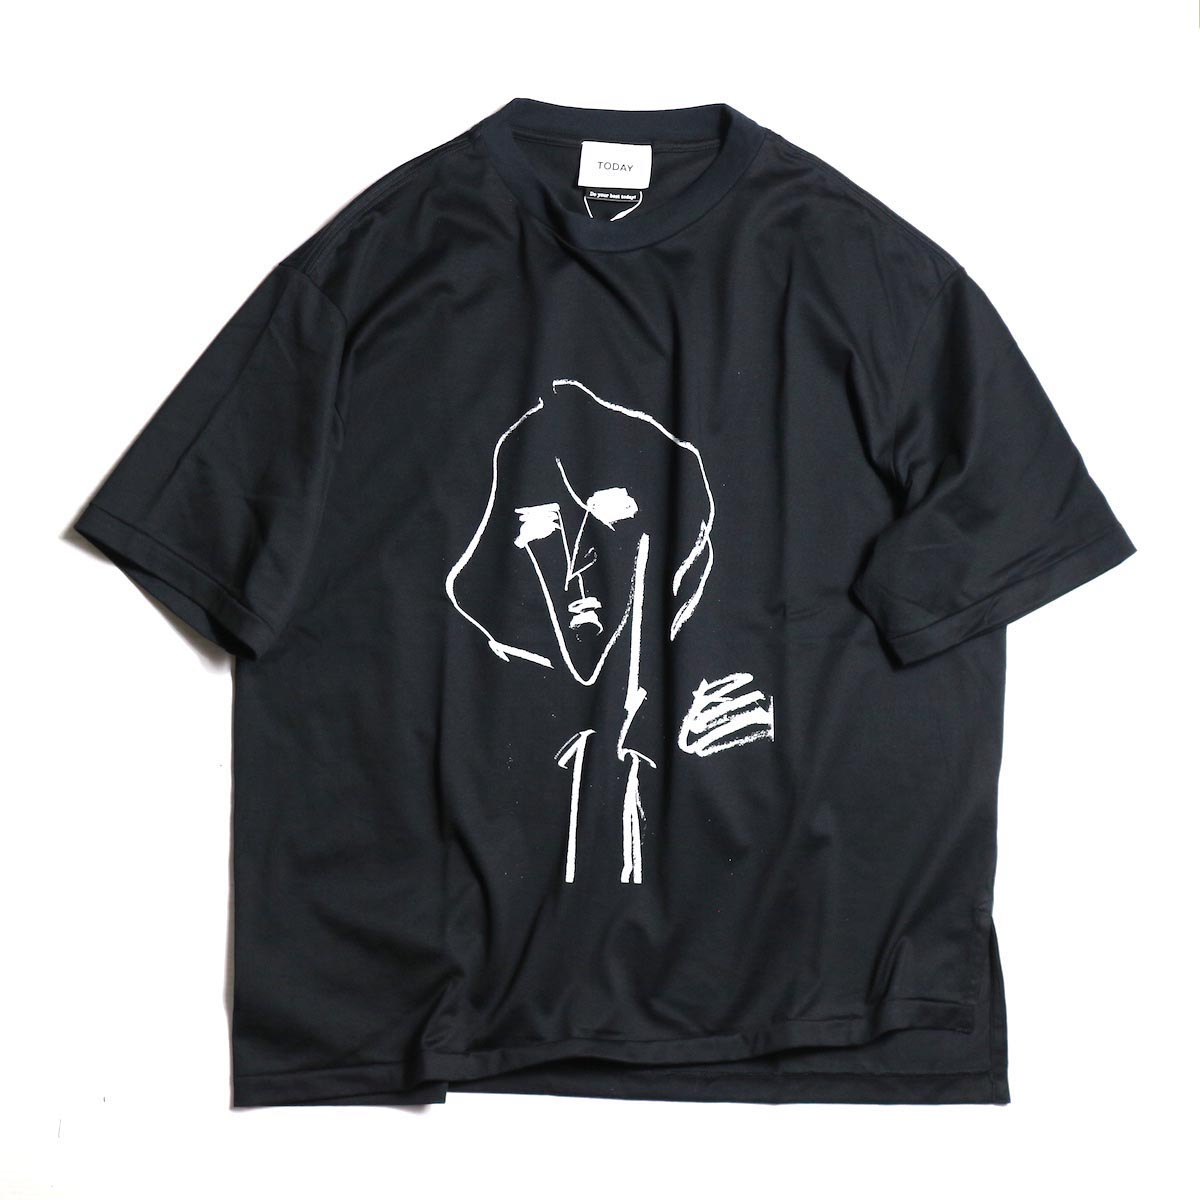 TODAY edition / drawing tee #3 -Black